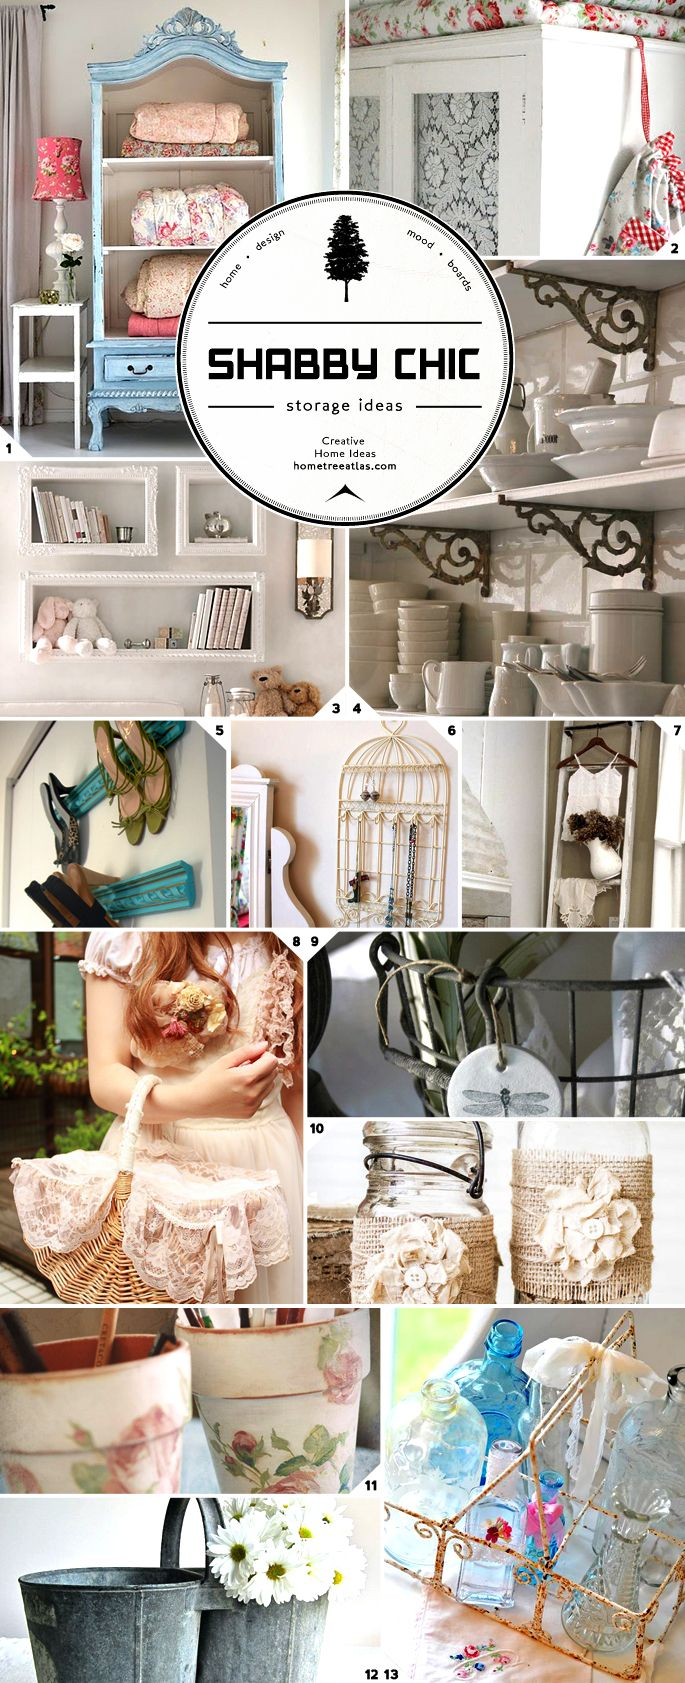 Every room needs storage furniture and containers. If you choose well designed pieces, they can be left out in the open and add to the decor and style of the room. Here are some shabby chic storage ideas that will help transform your space. Upcycling Furniture Shabby chic furniture is distressed, and the best way […]